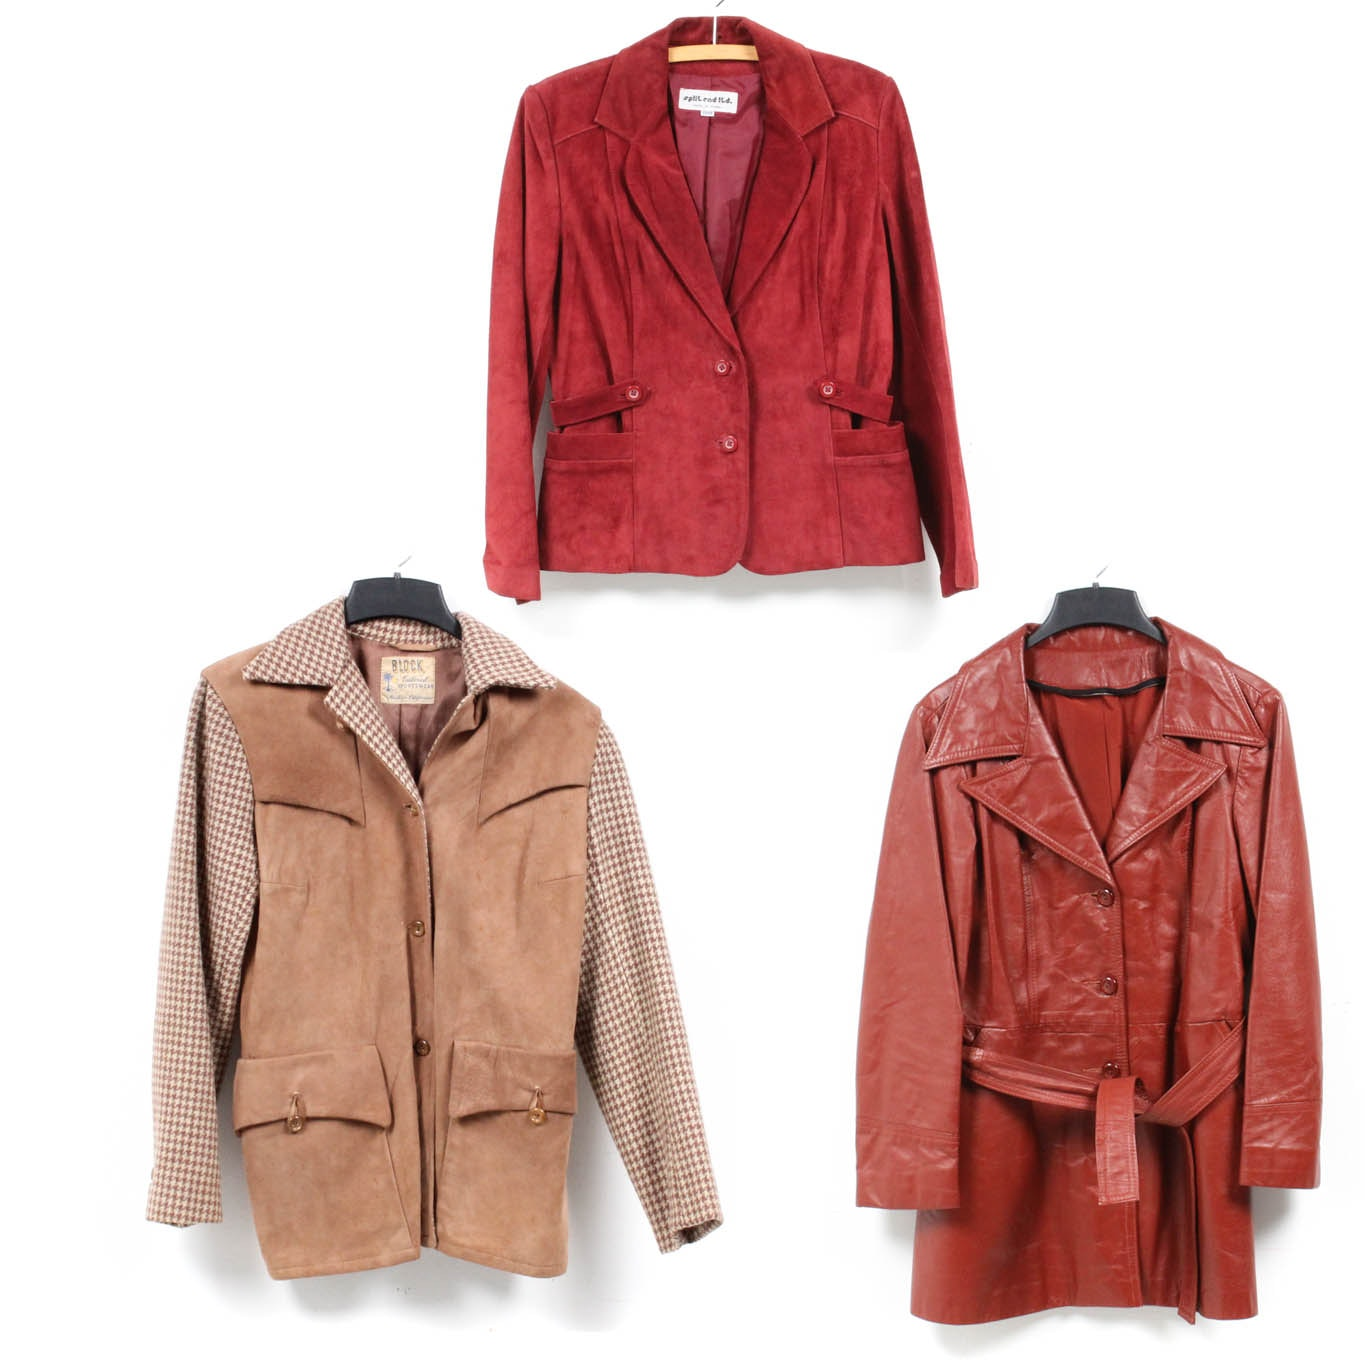 Vintage Coats with Leather, Suede and Houndstooth